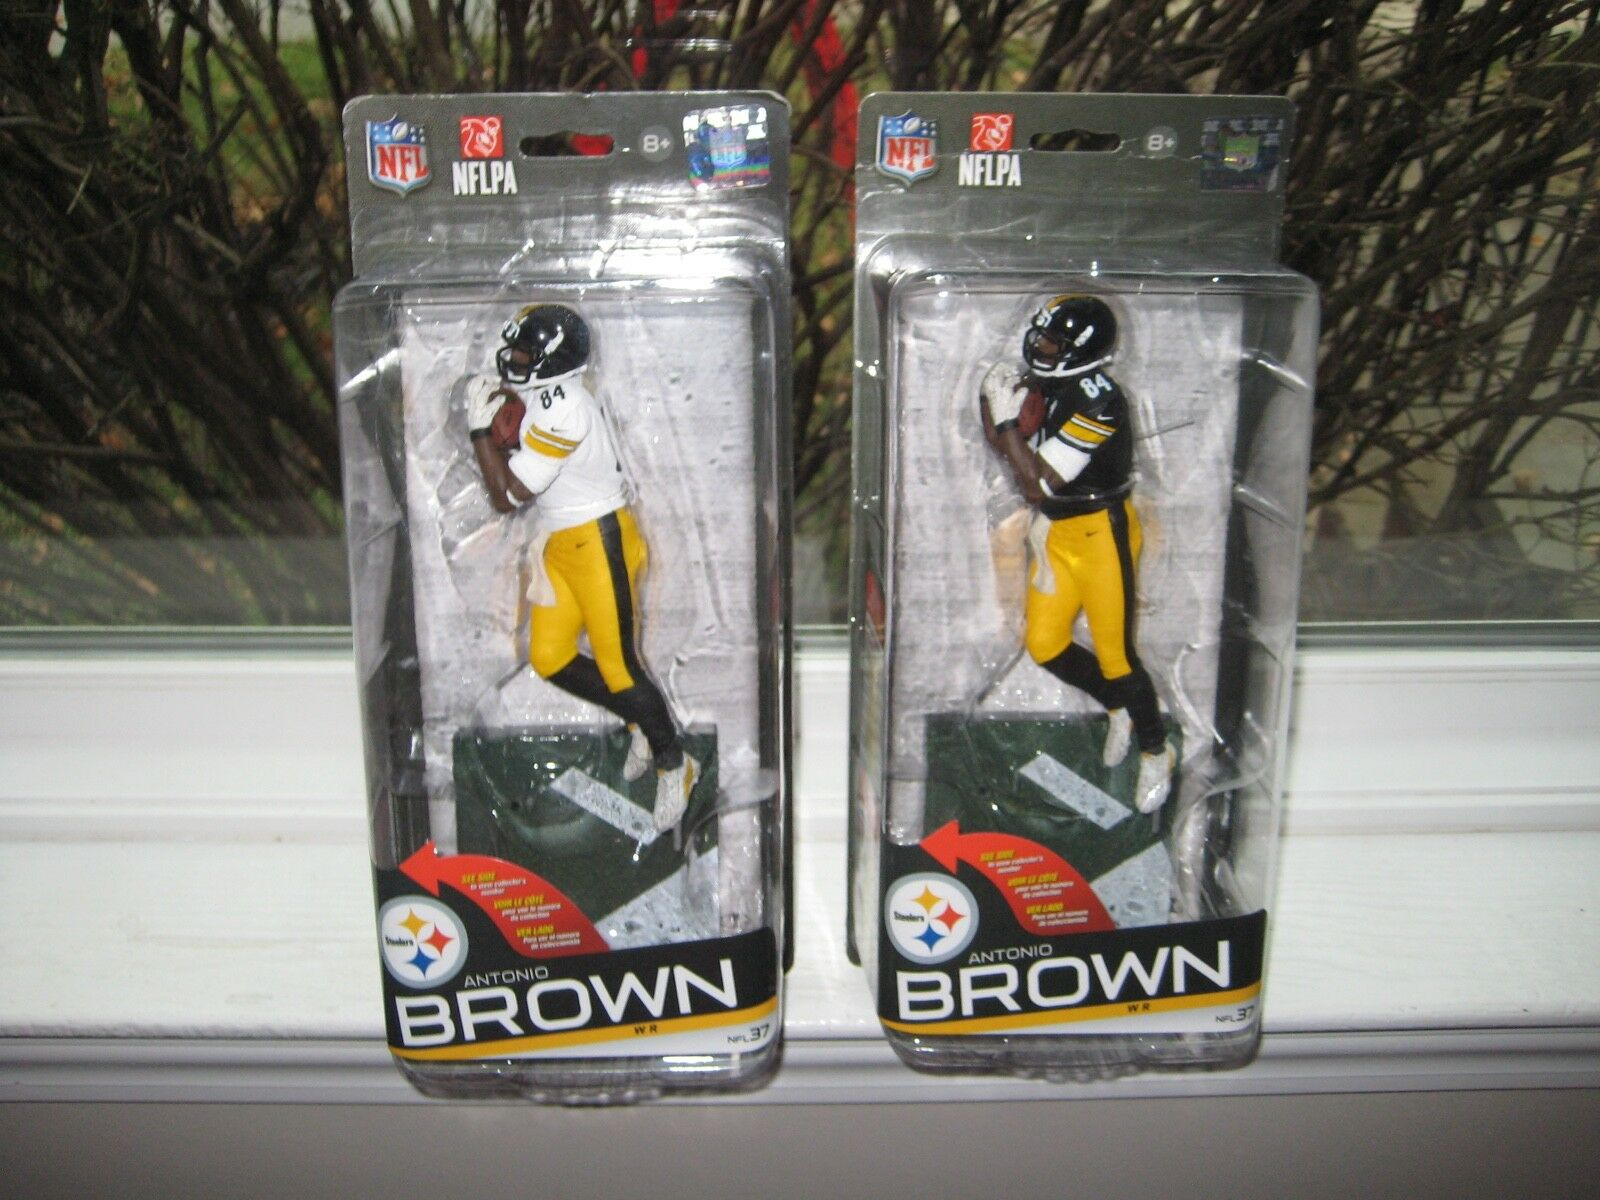 MCFARLANE NFL 37 ANTONIO braun CHASE VARIANT COLLECTOR LEVEL  486/500 LOT